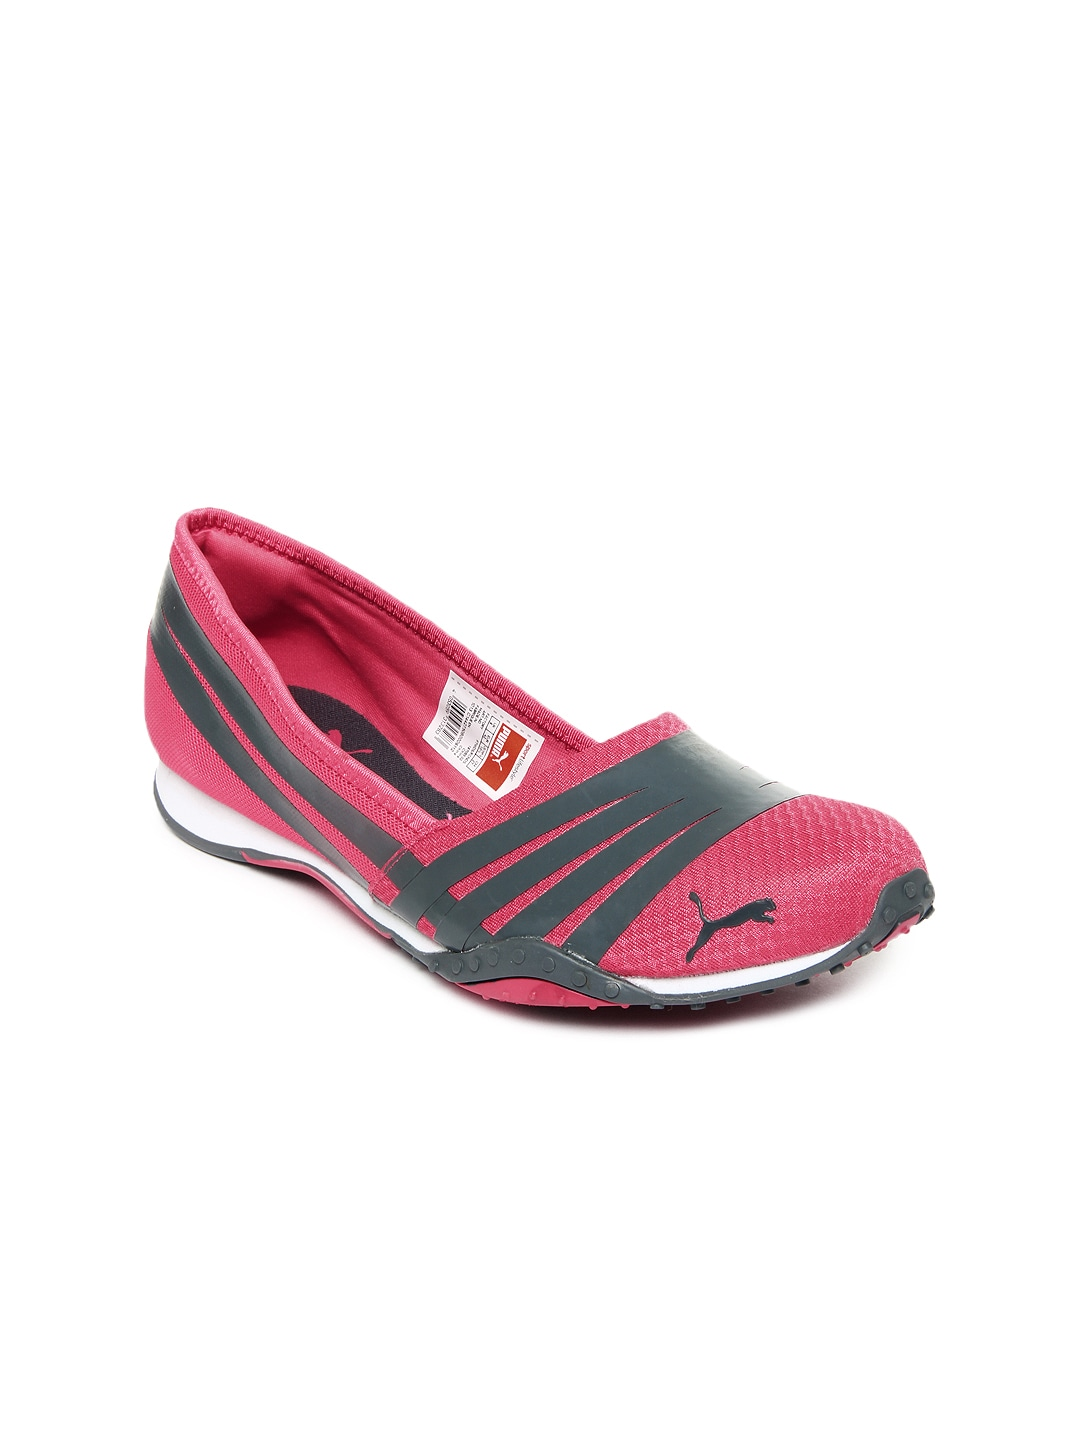 bca8639862e Puma 18705502 Women Pink And Grey Asha Alt 2 Flat Shoes- Price in India